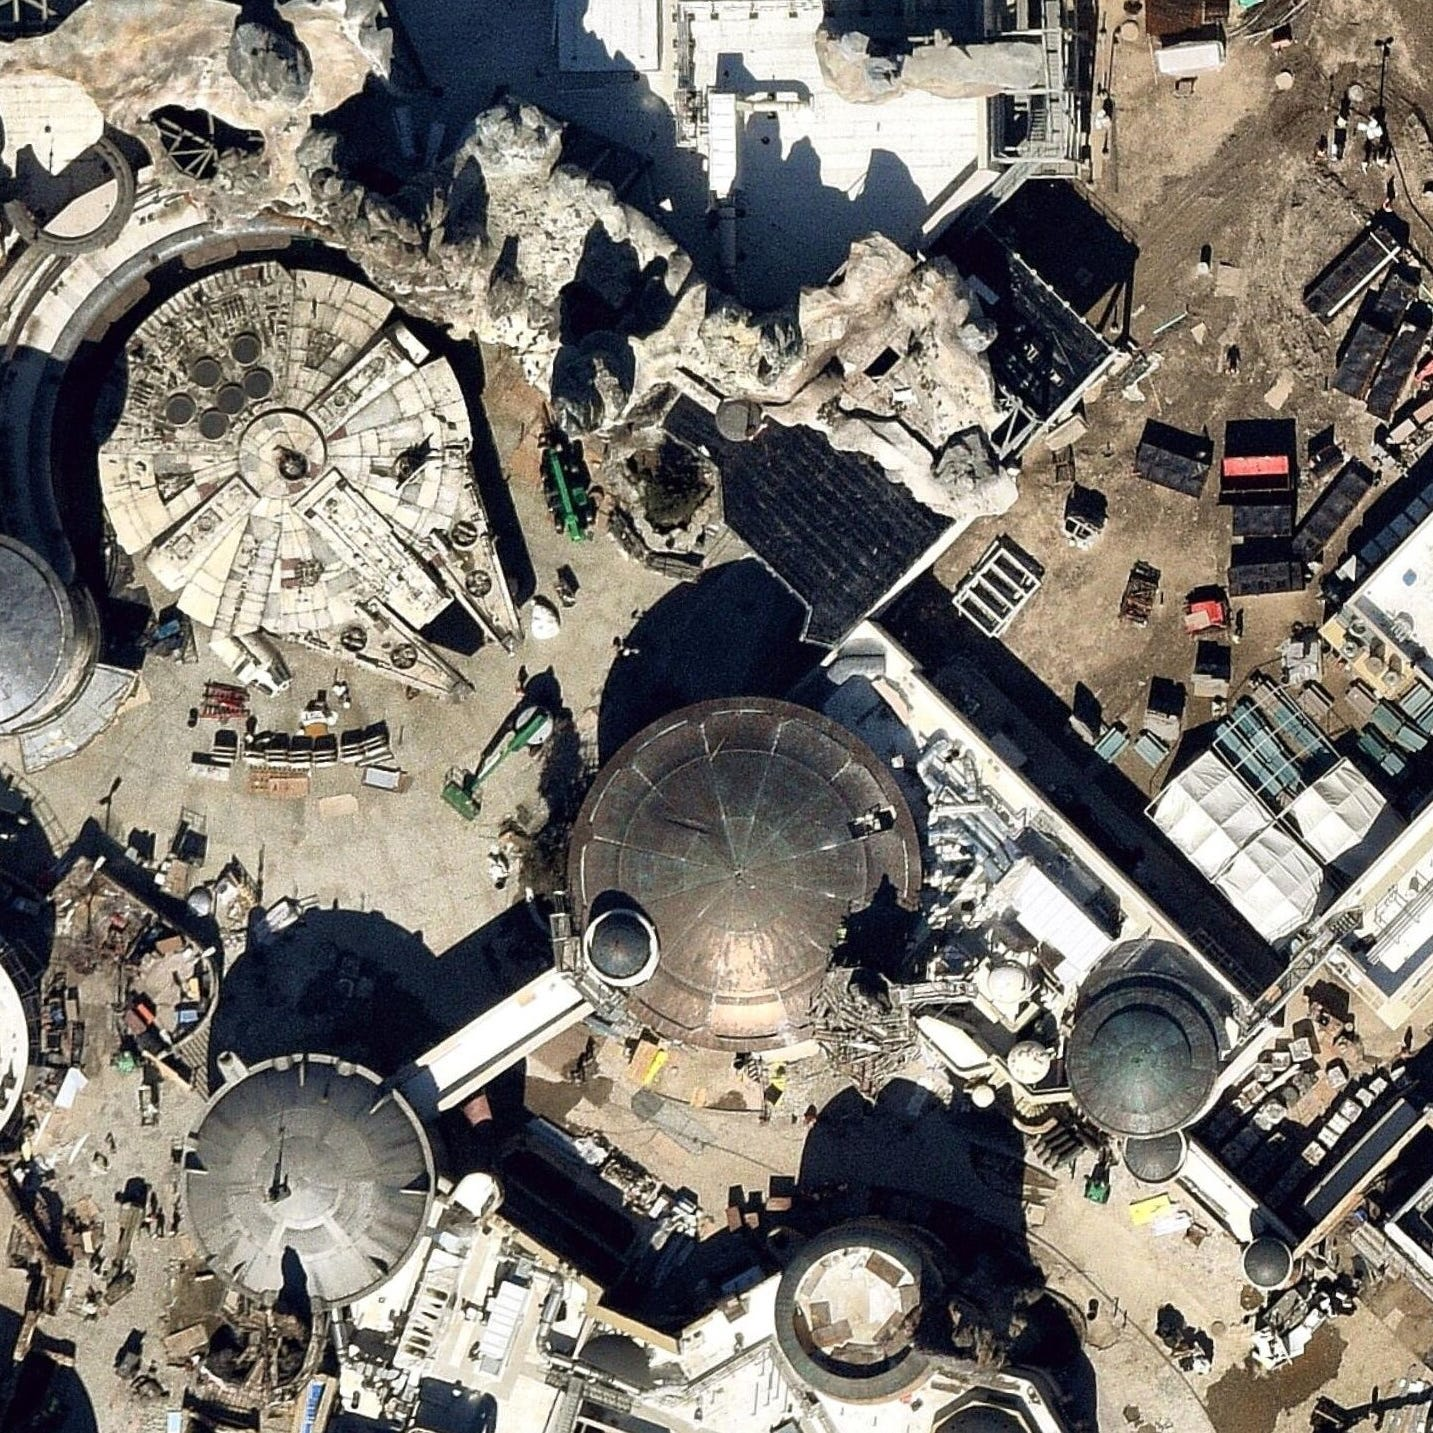 Here's what Disney's Star Wars land looks like from space